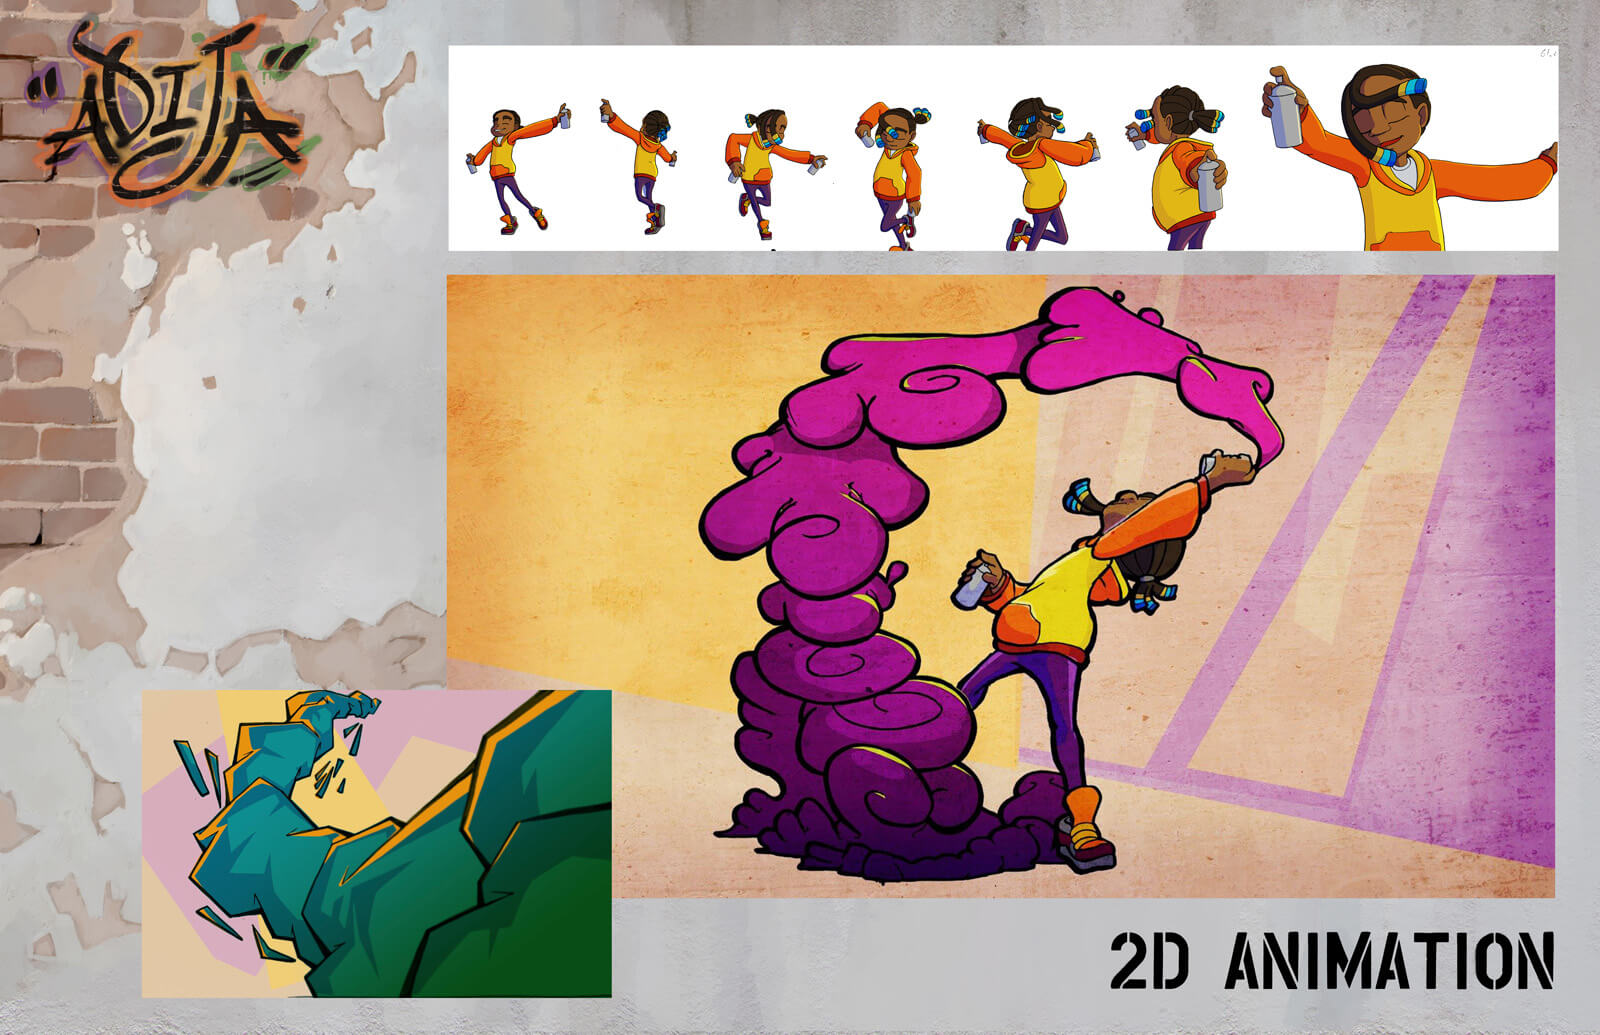 2D animation sheet depicting a young girl in the middle of spray-painting her artwork